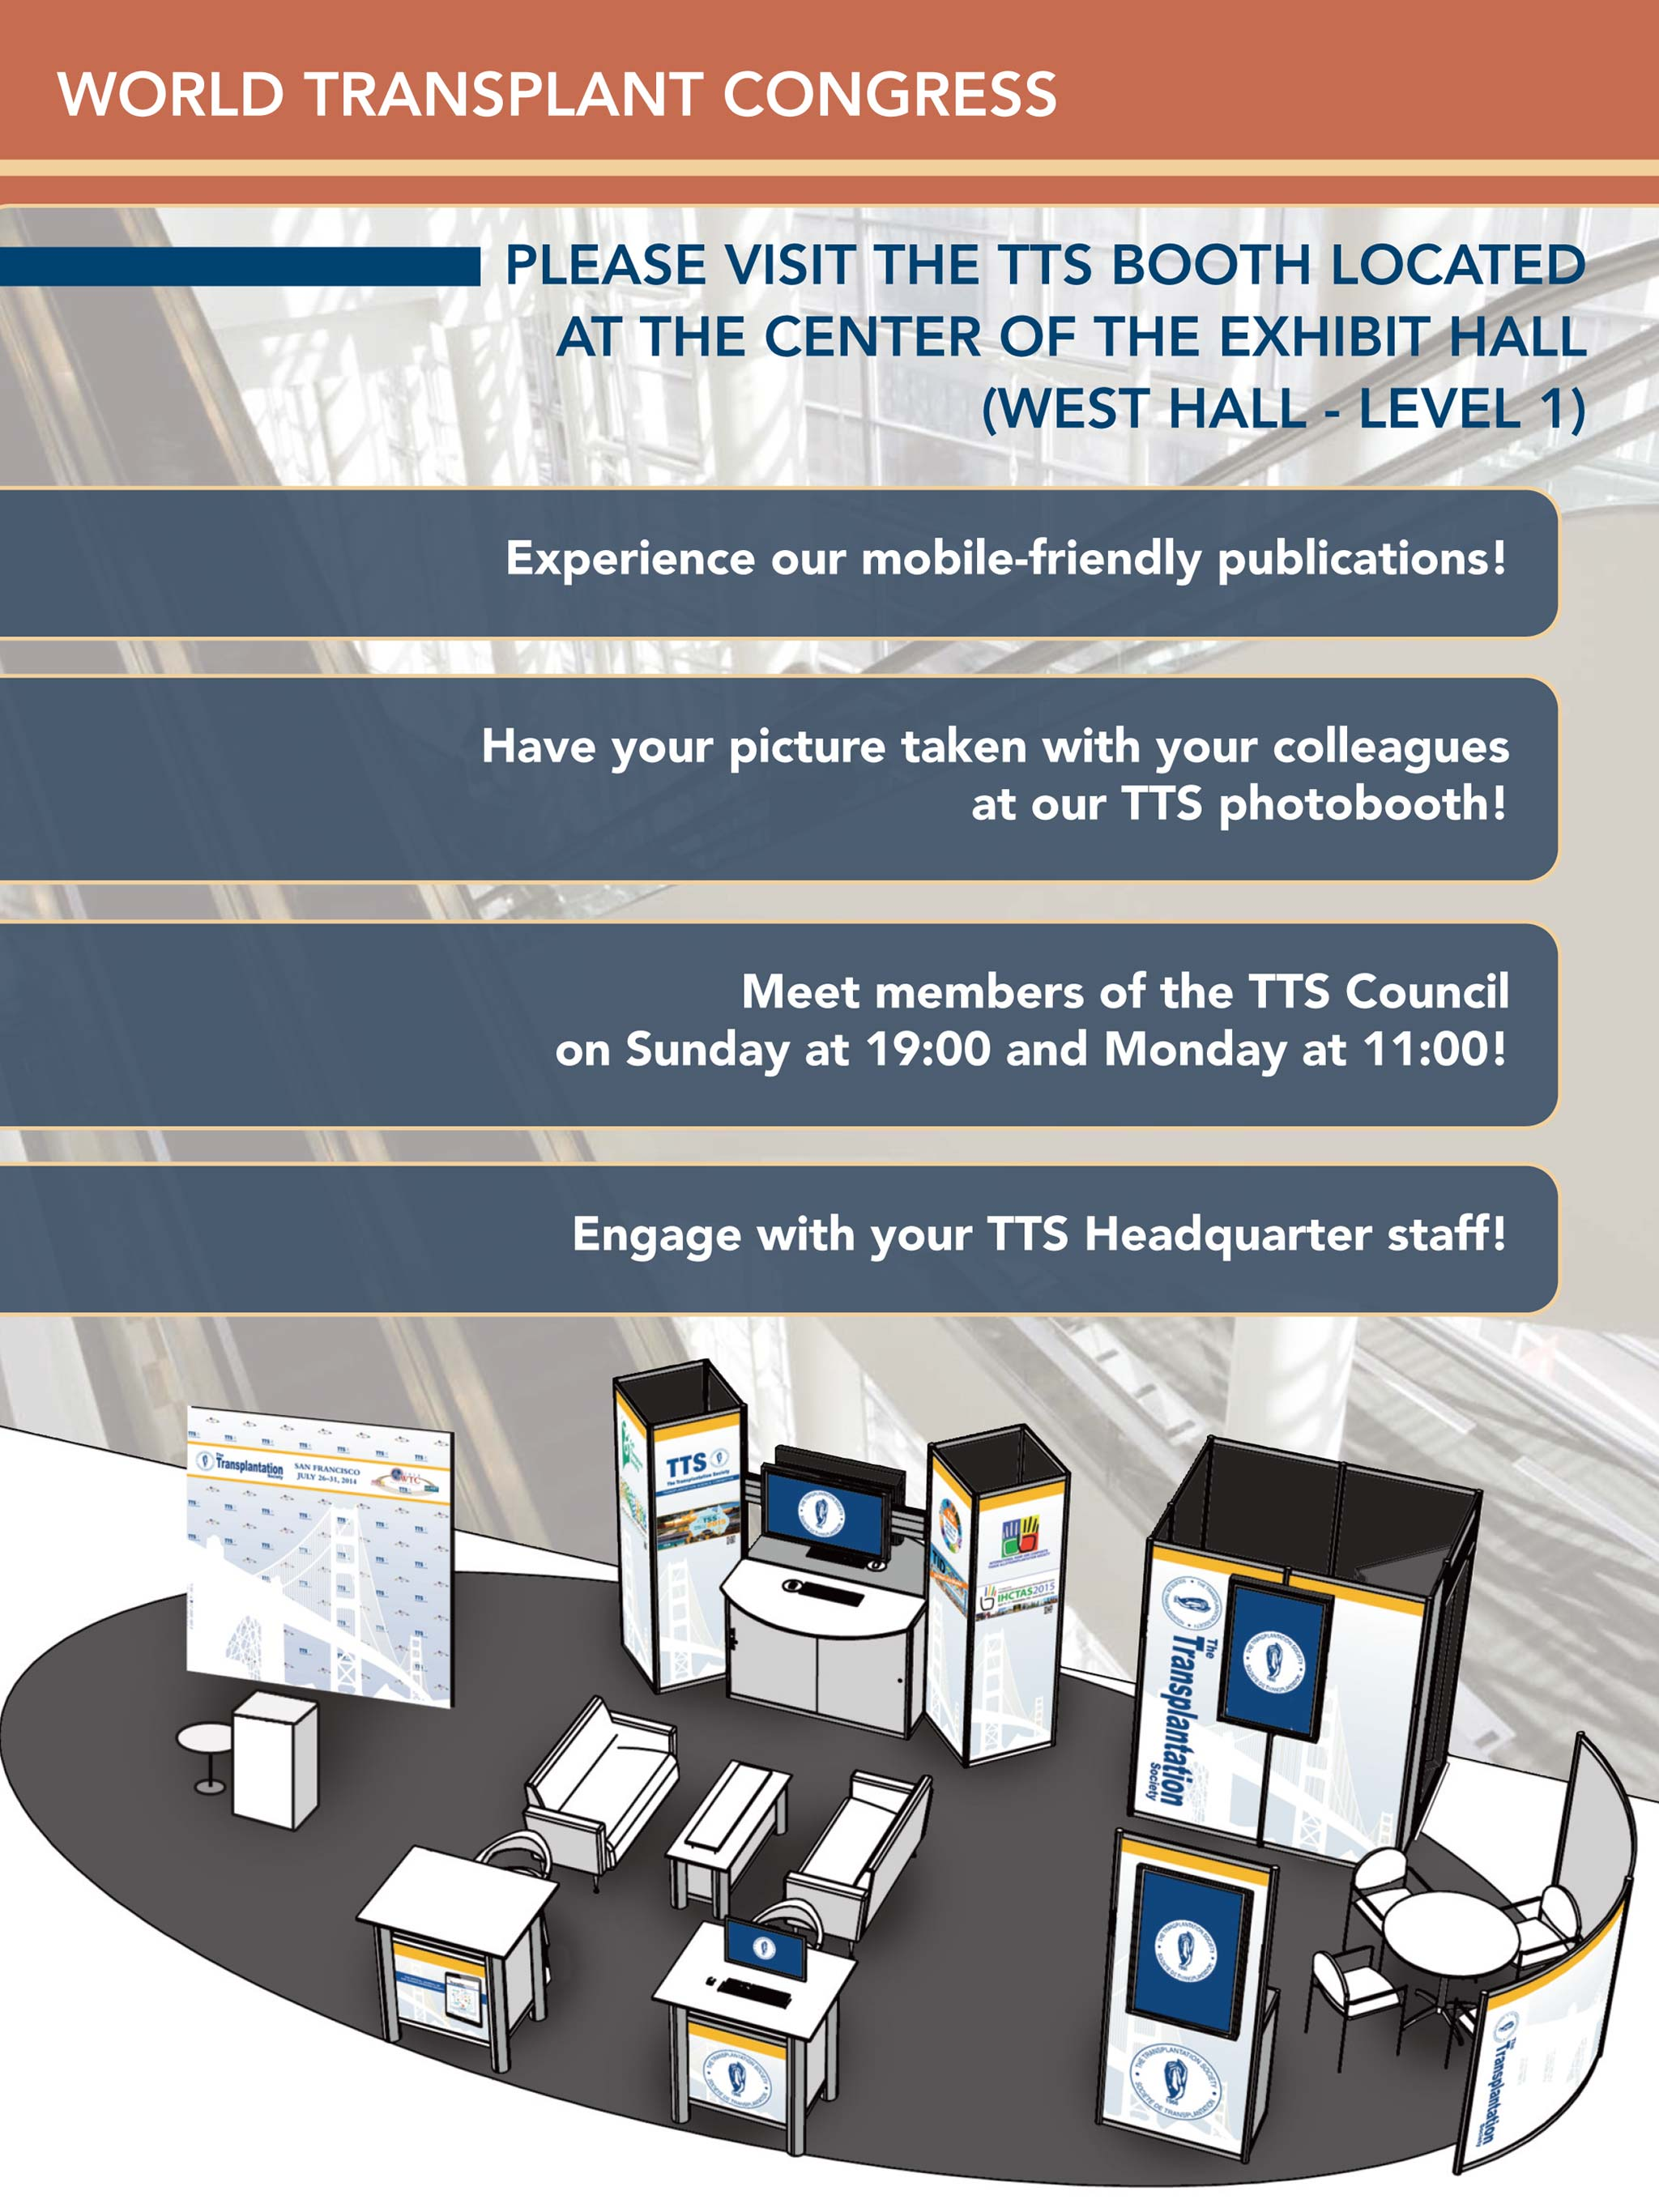 PLEASE VISIT THE TTS BOOTH LOCATED AT THE CENTER OF THE EXHIBIT HALL (WEST HALL - LEVEL 1)